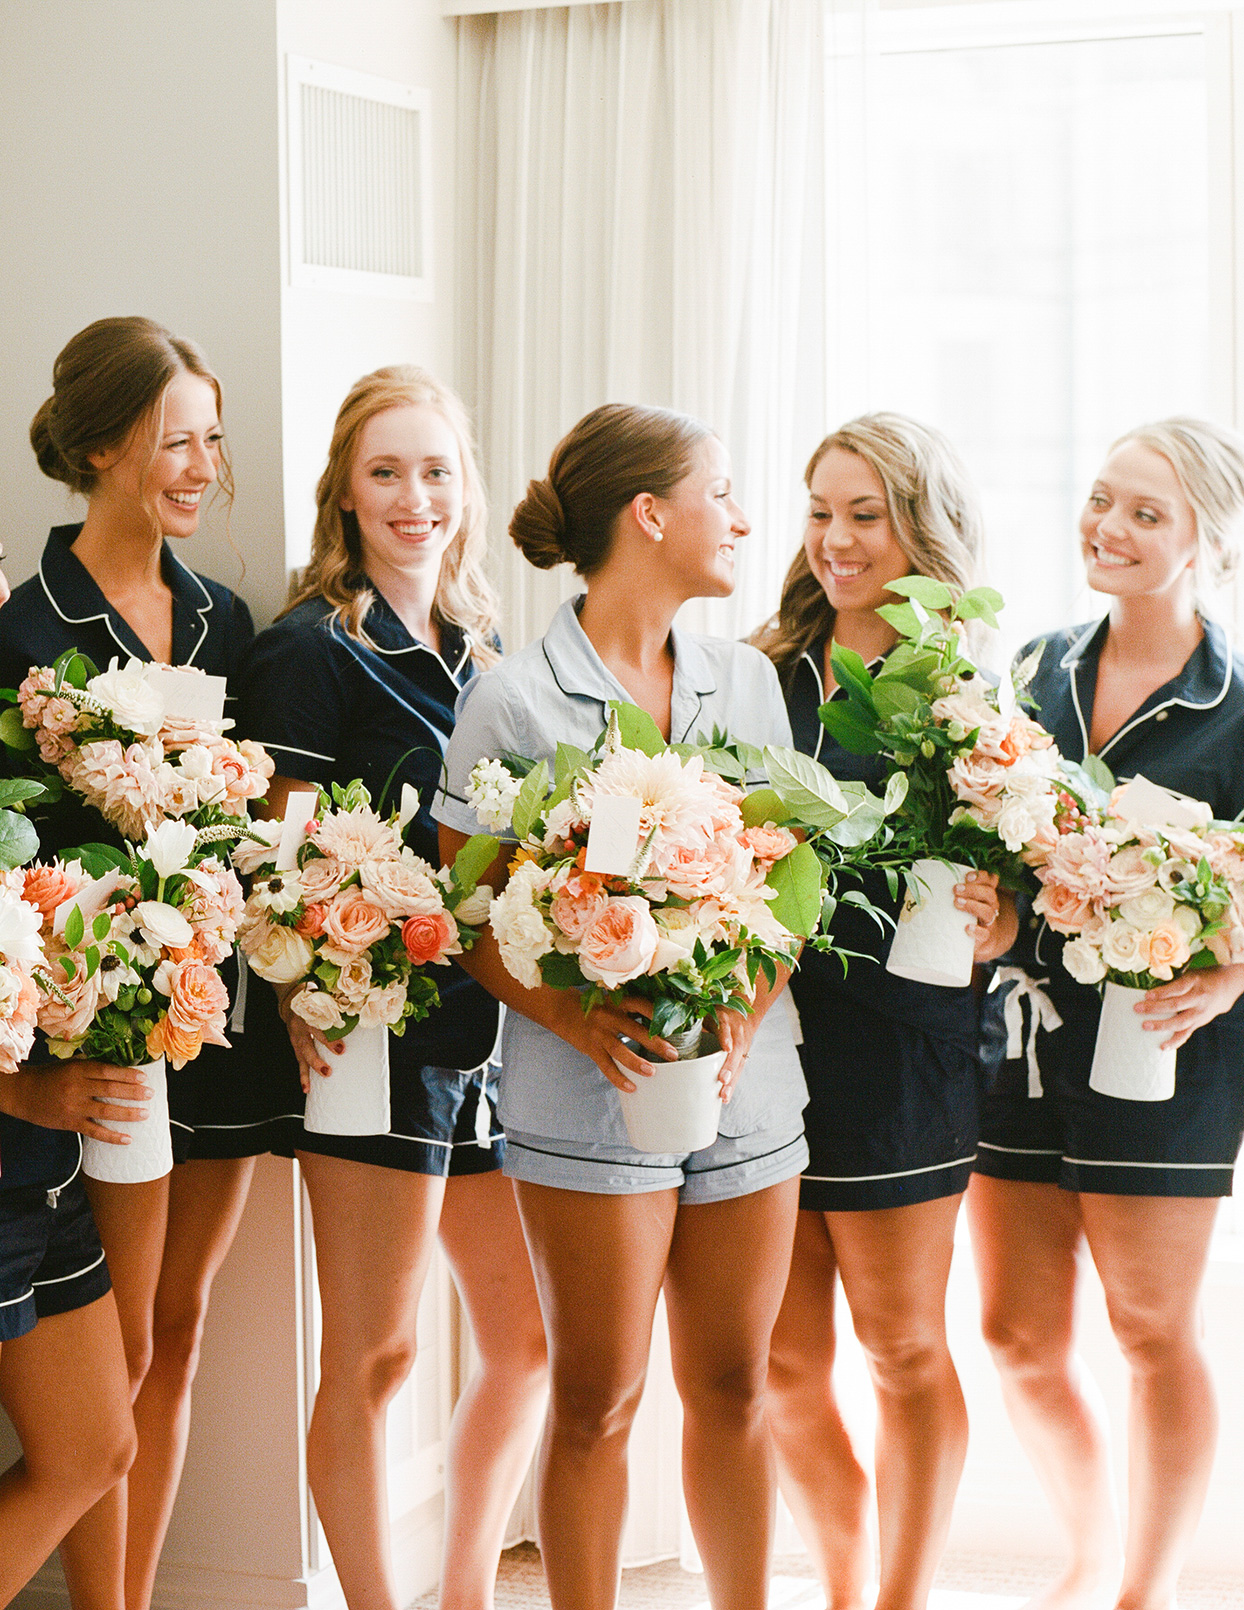 shelby david wedding bridesmaids in matching pjs holding flowers